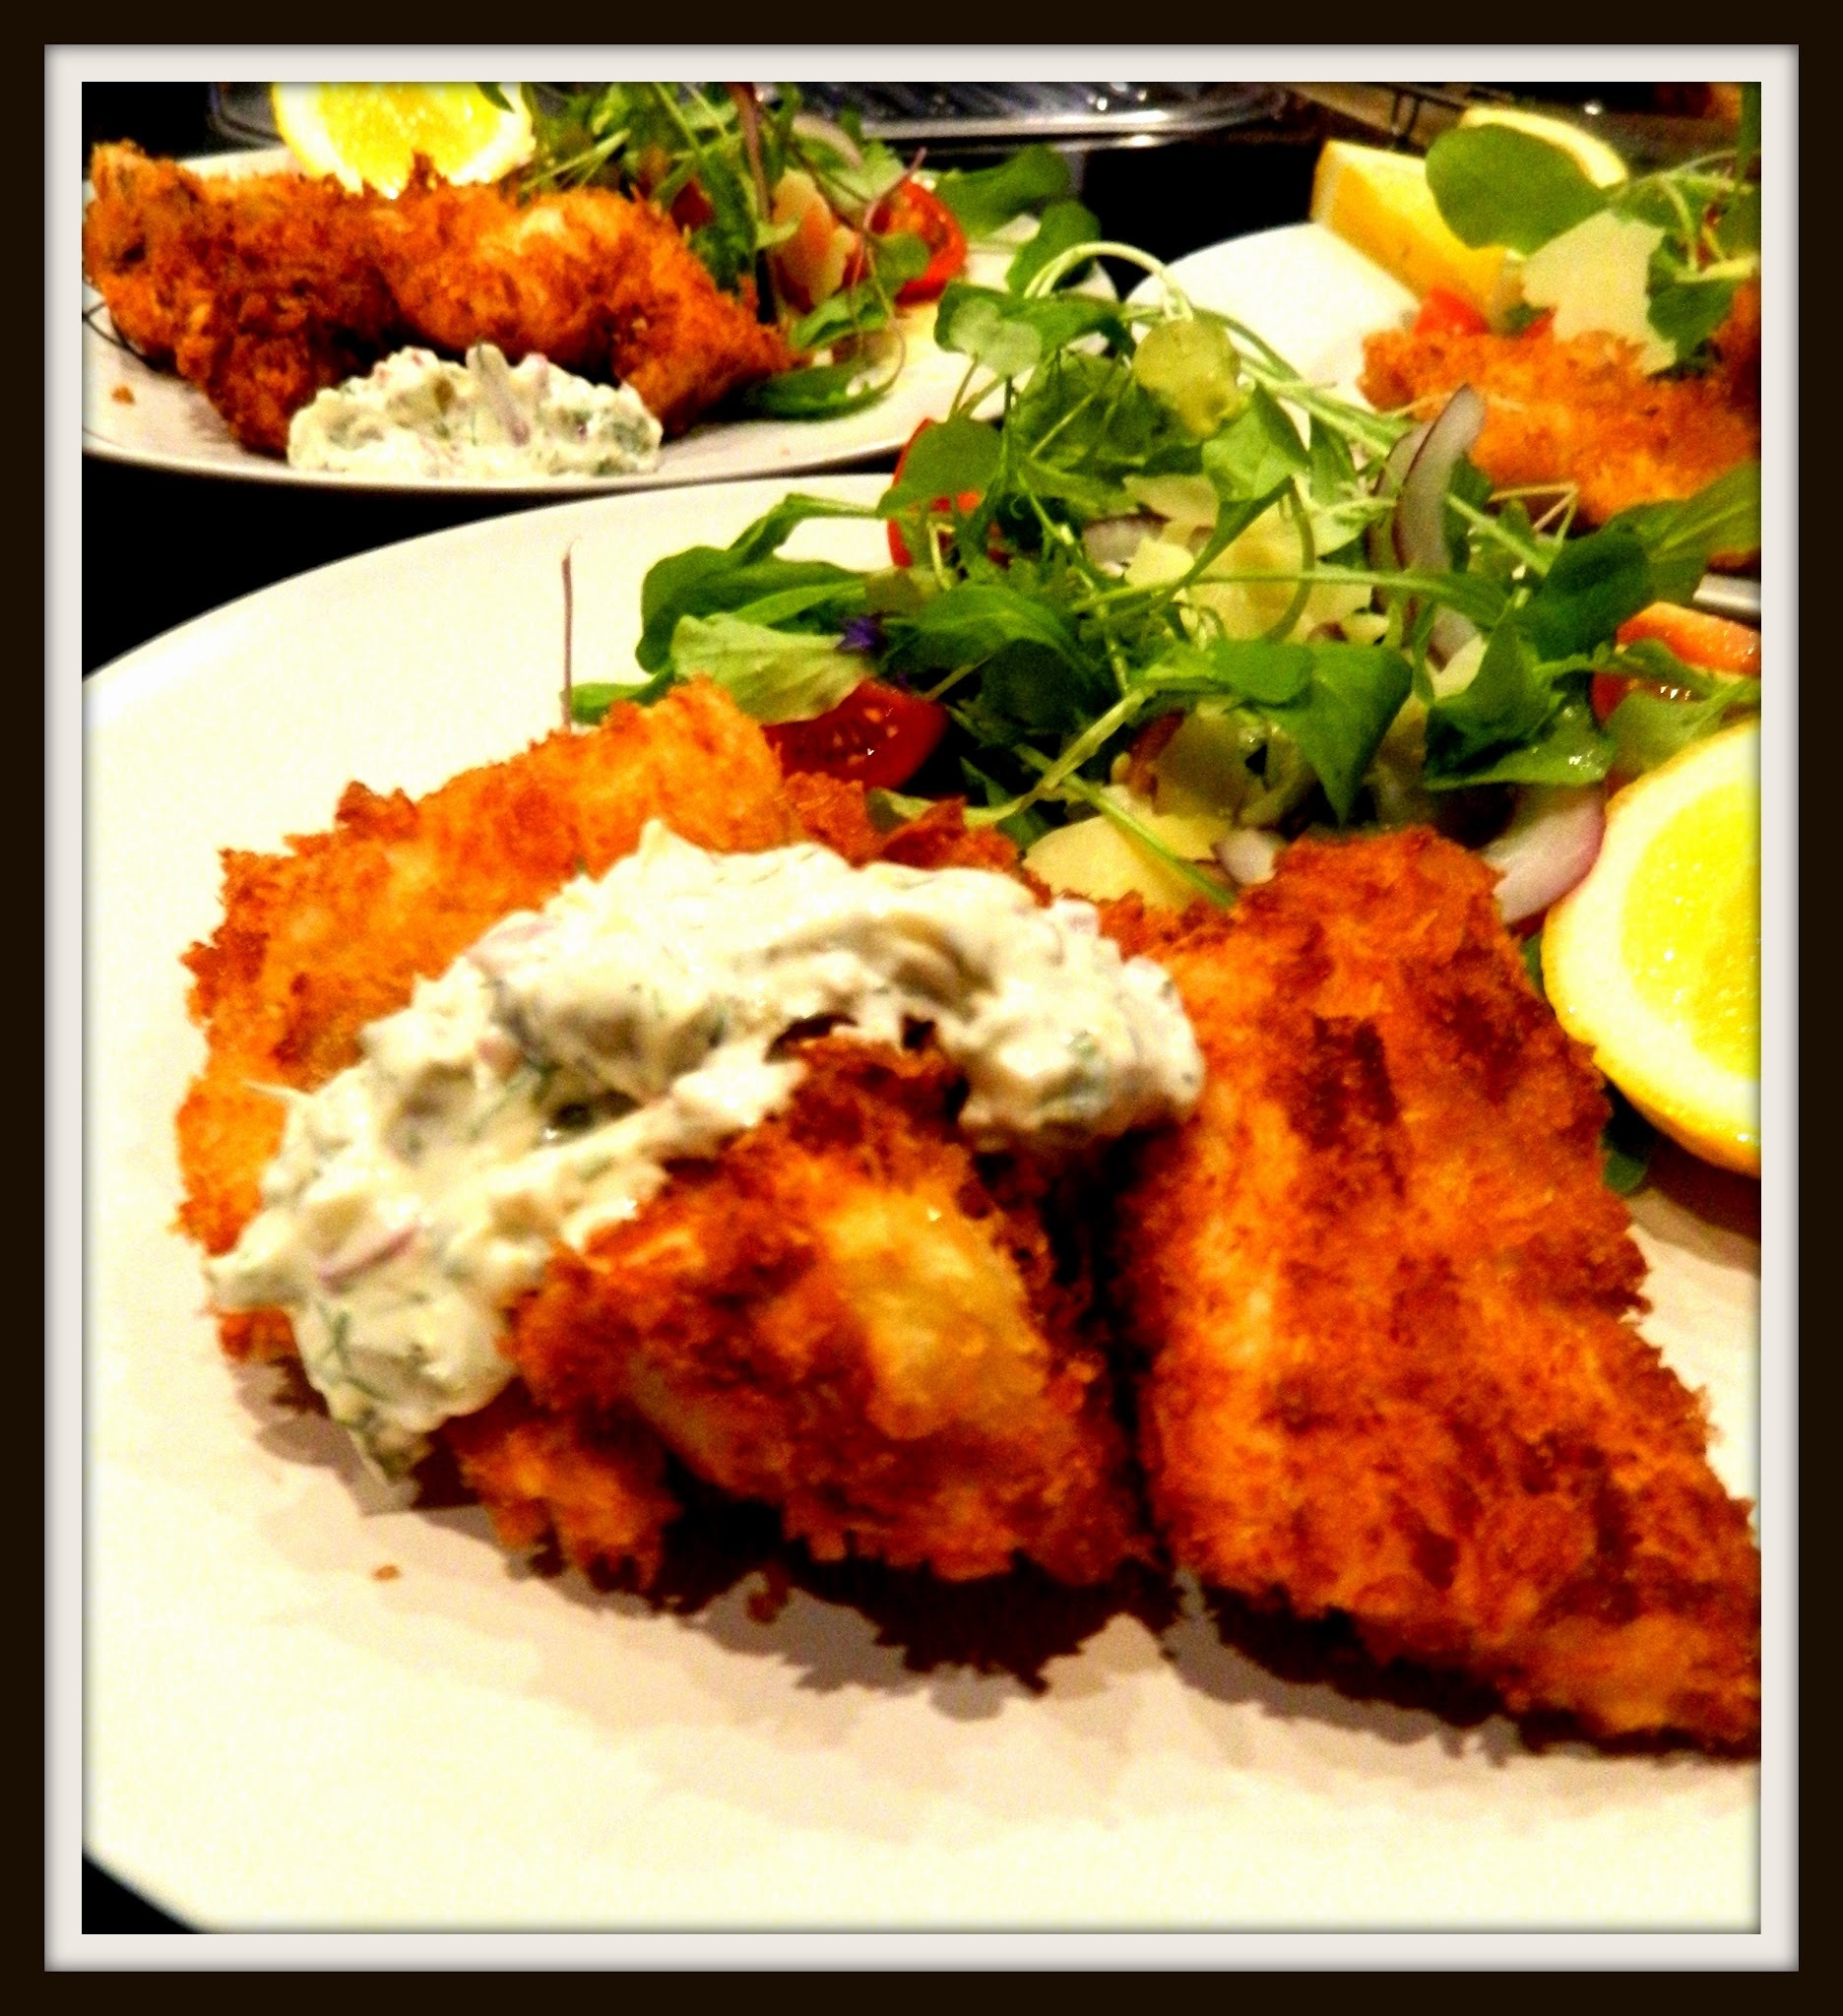 PANKO CRUMBED SNAPPER WITH HOMEMADE TARTARE SAUCE